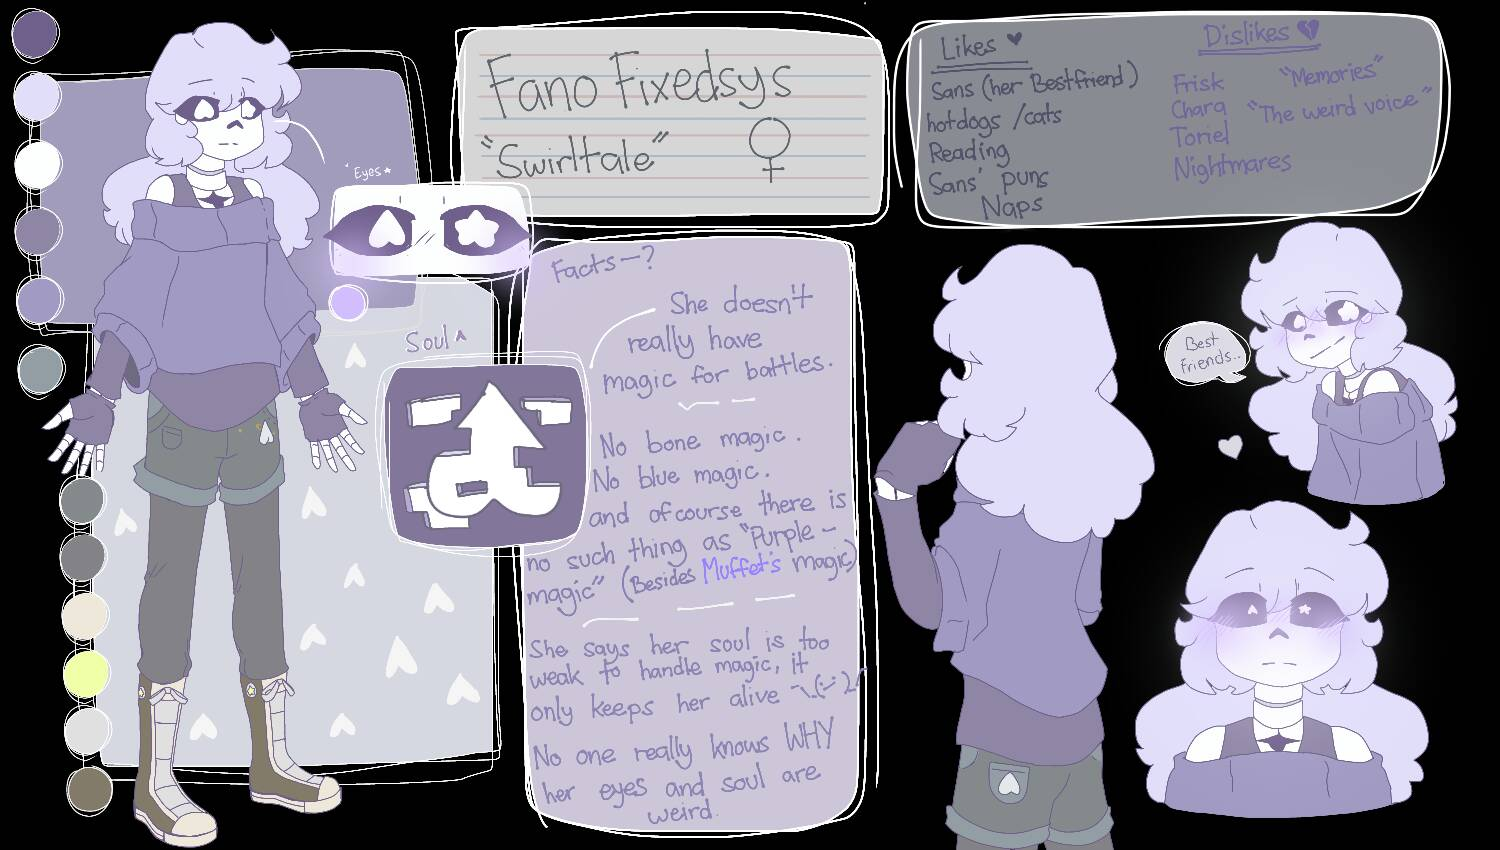 Fano Fixedsys New Reference By Mickaaachy On Deviantart Fano(c)fano fixedsys sans(c)toby fox this video doesn't belong to me. fano fixedsys new reference by